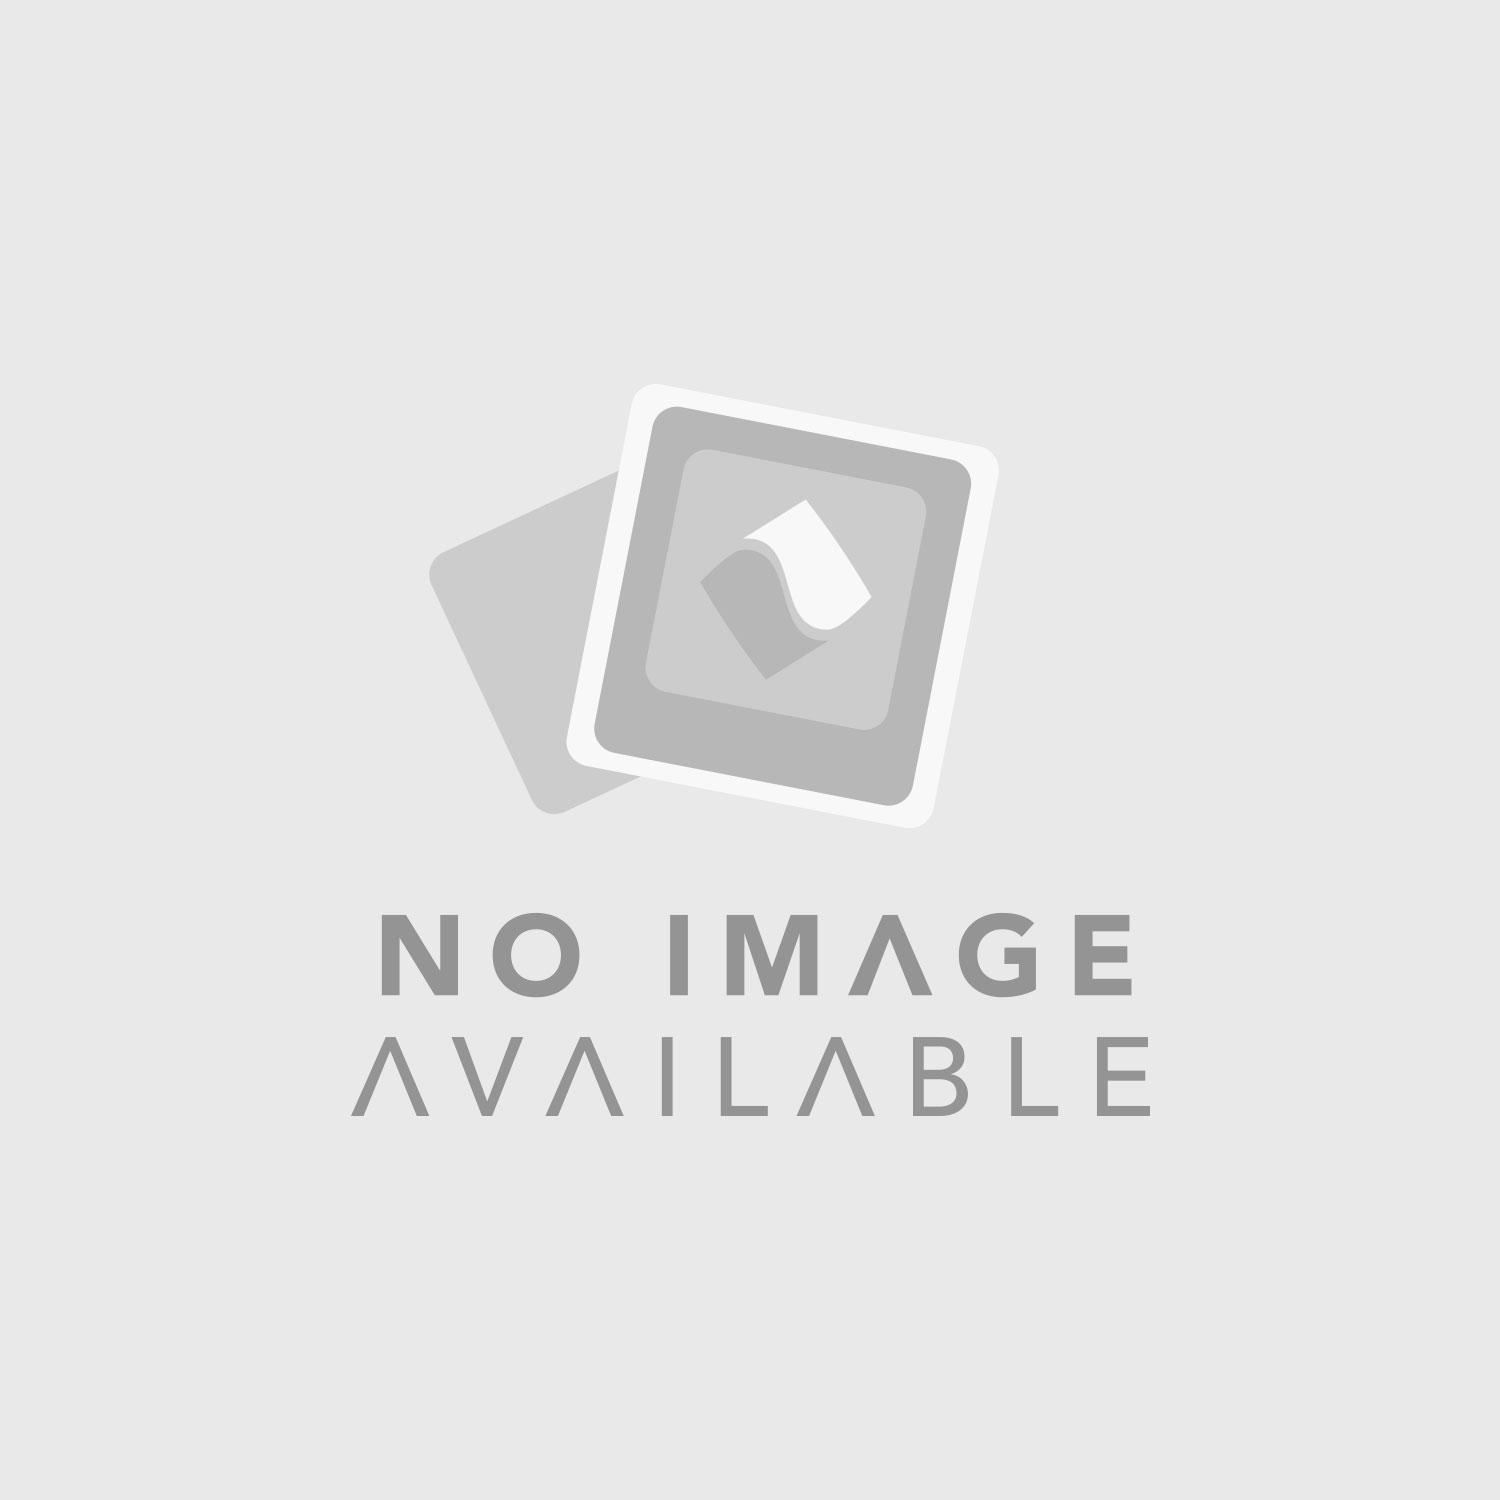 ART MacroMIX 4-Channel Line Mixer